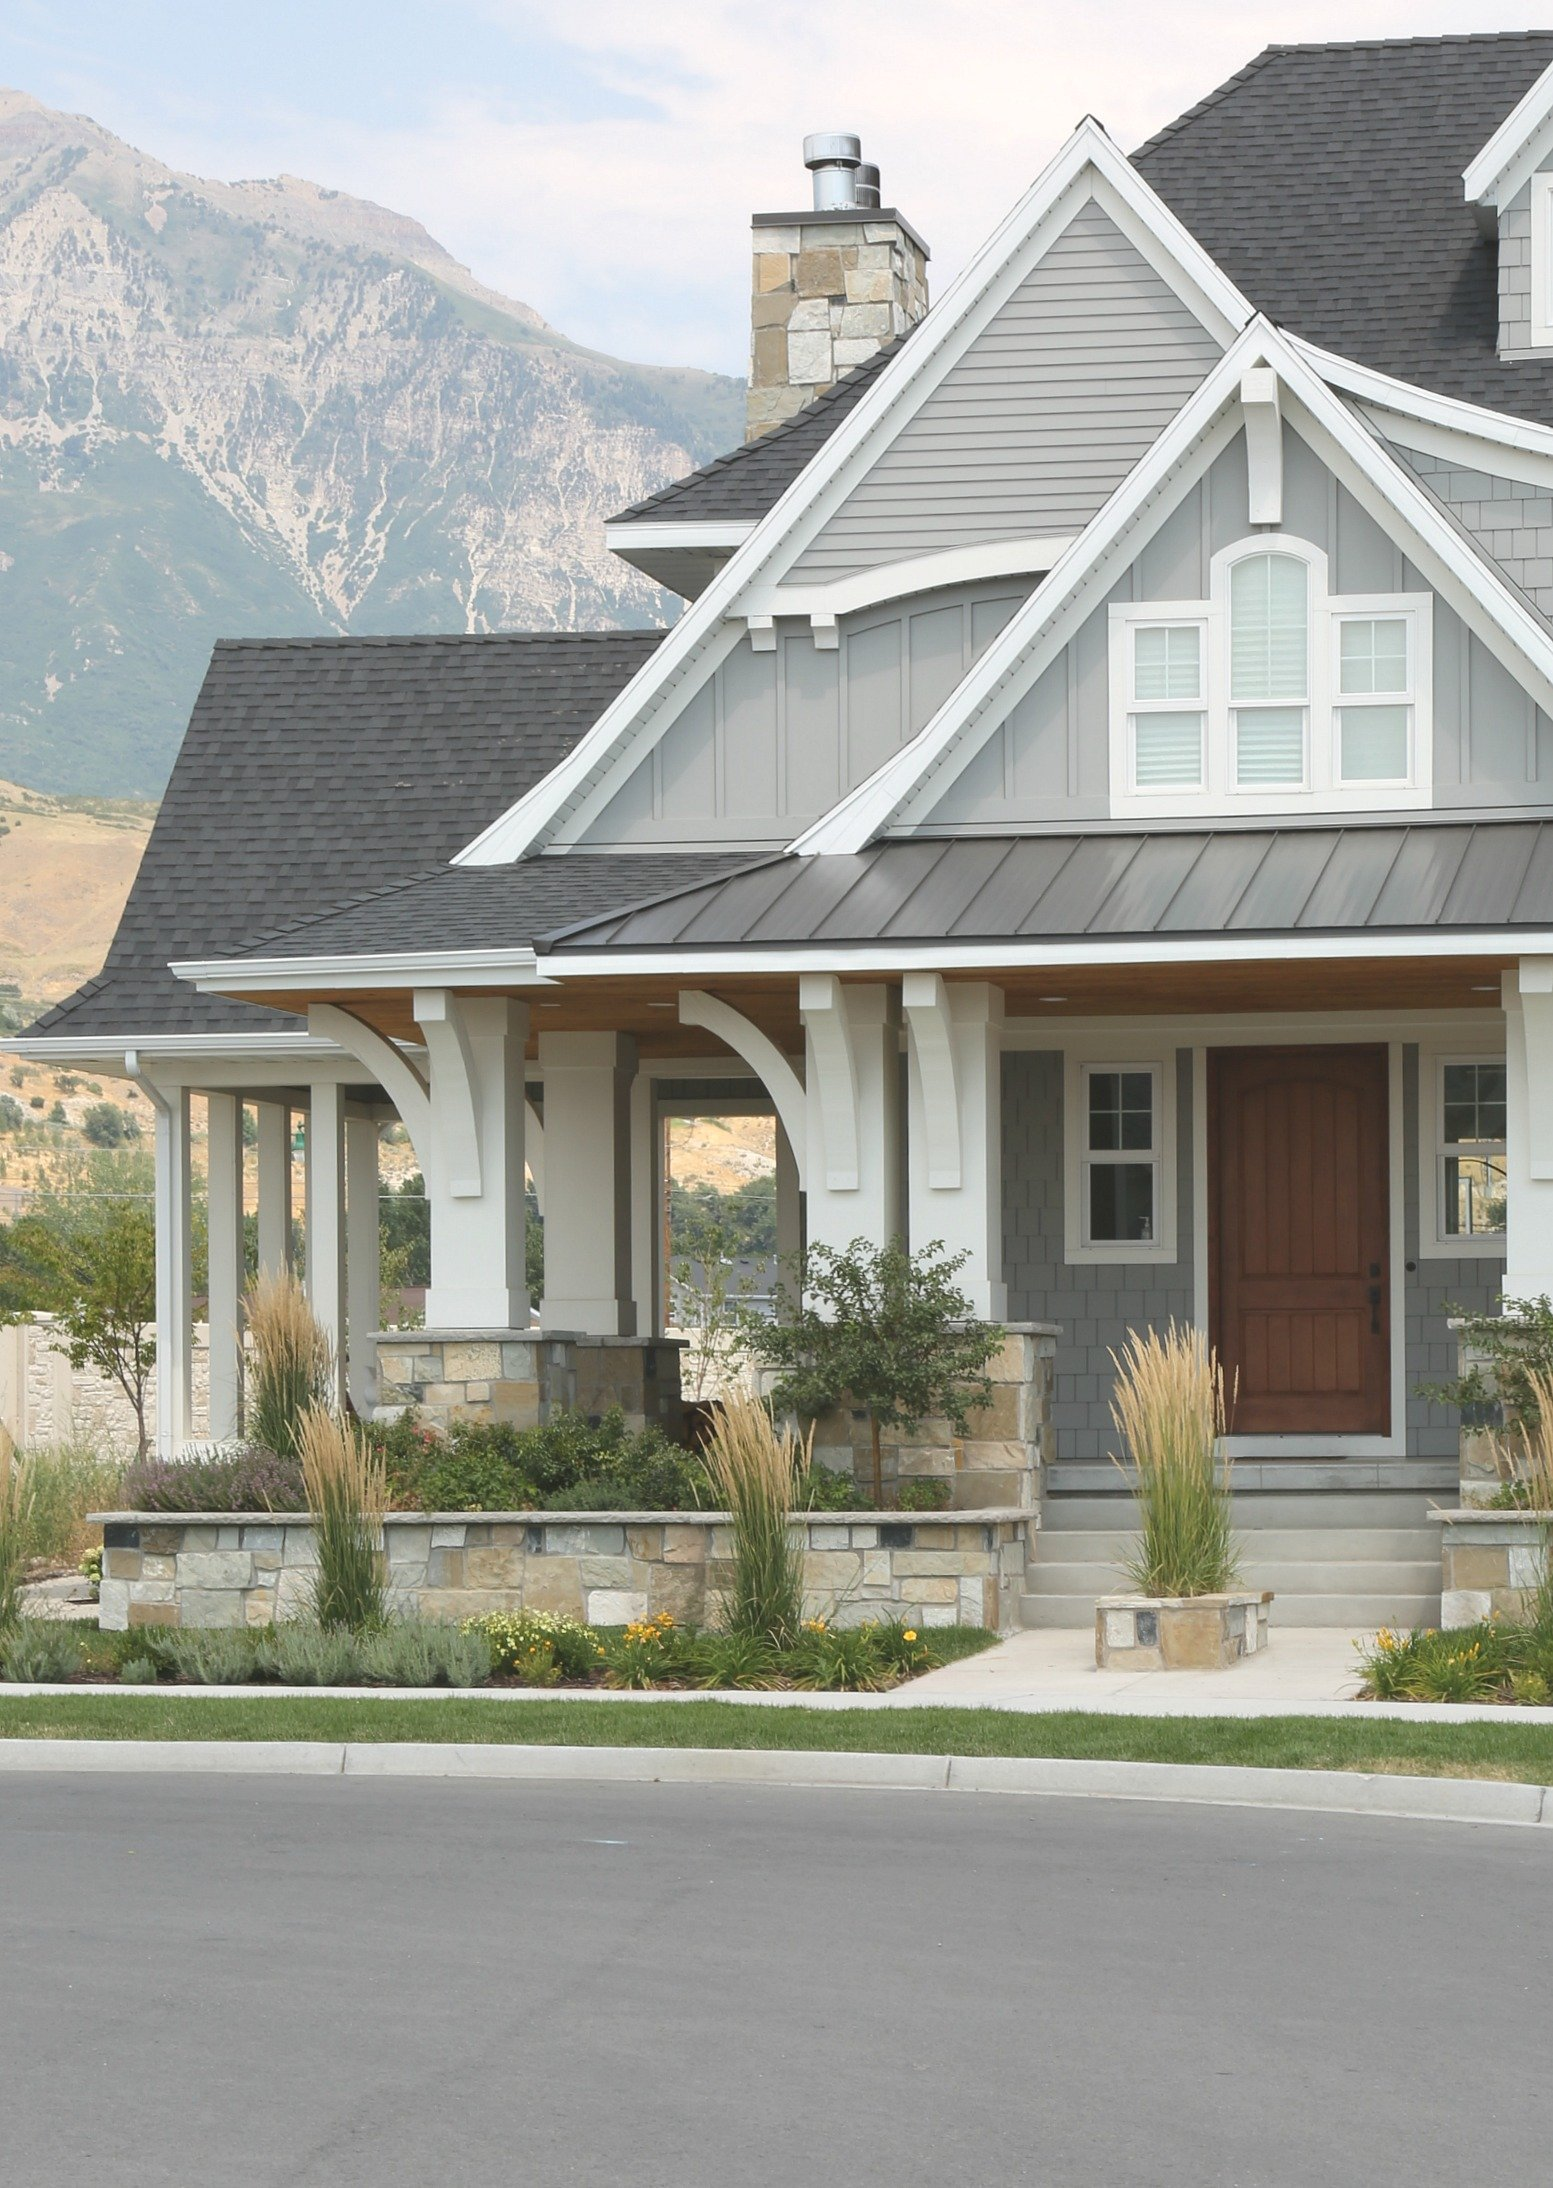 Choosing the best exterior paint for the project